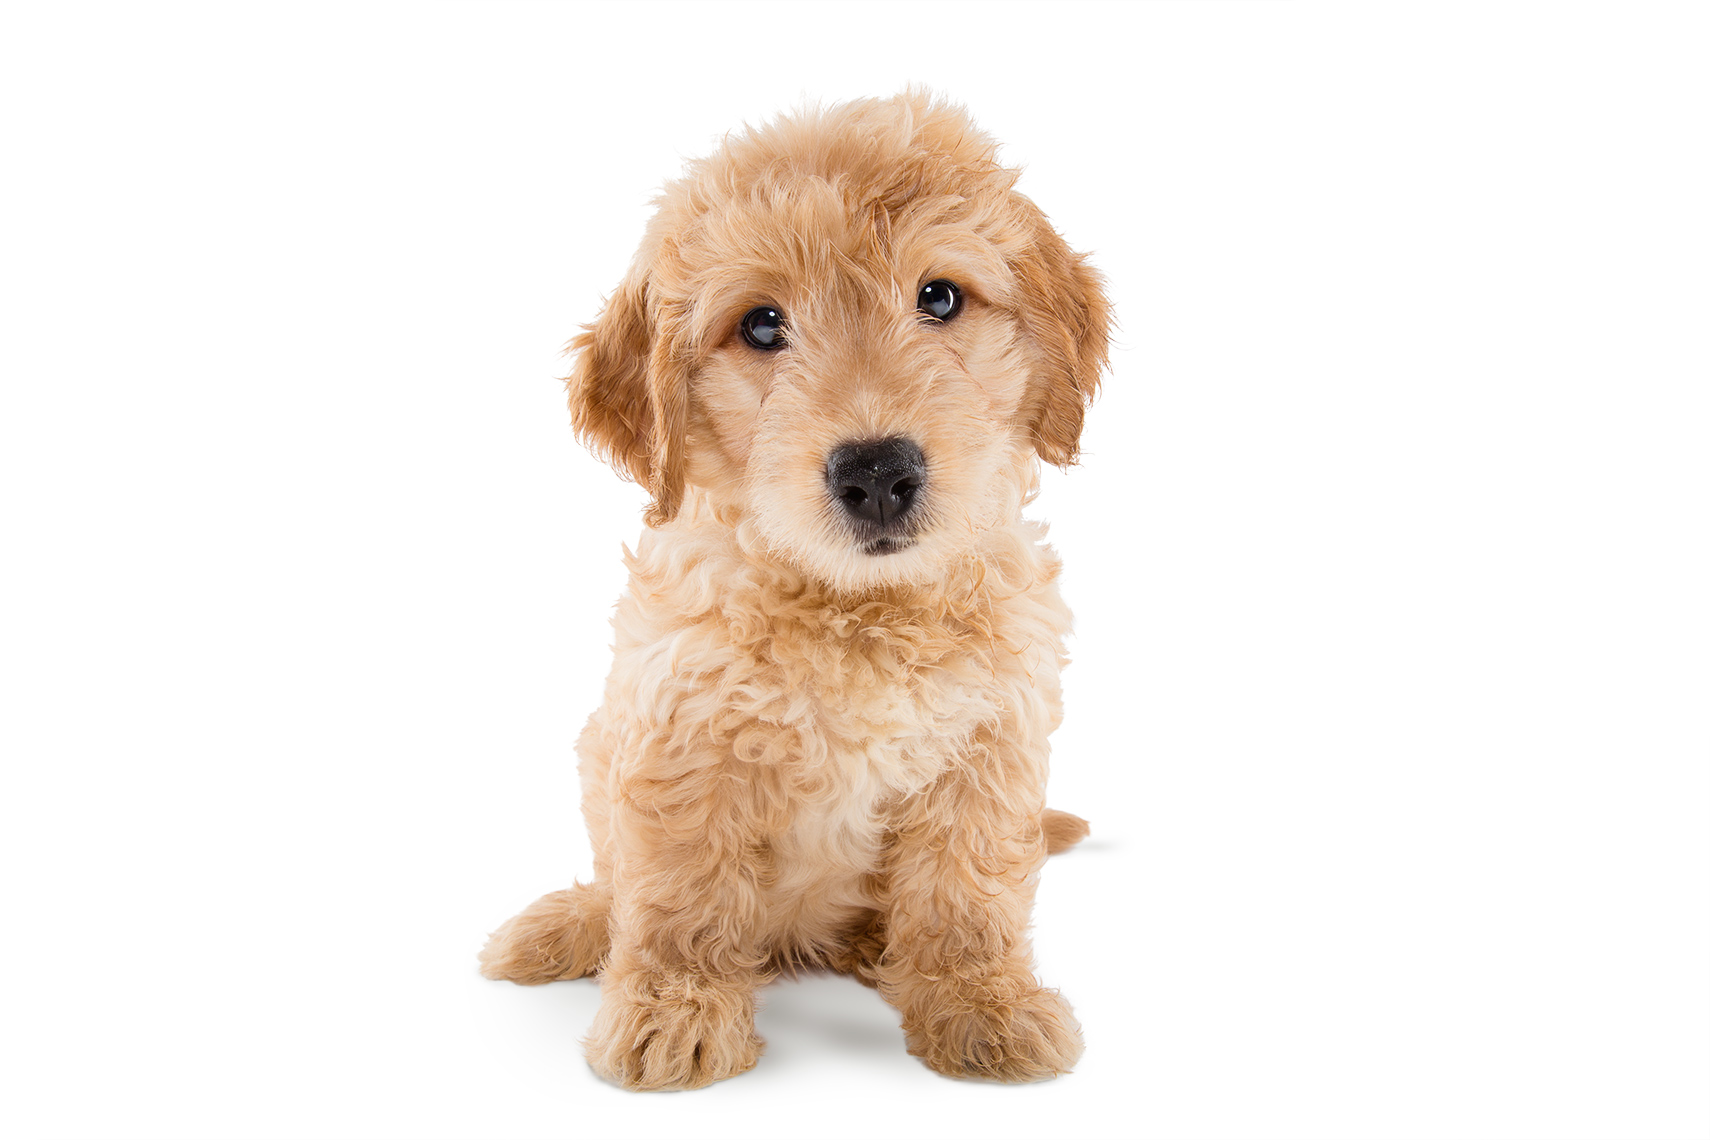 A really cute golden retriever puppy in a studio environment posing for a camera